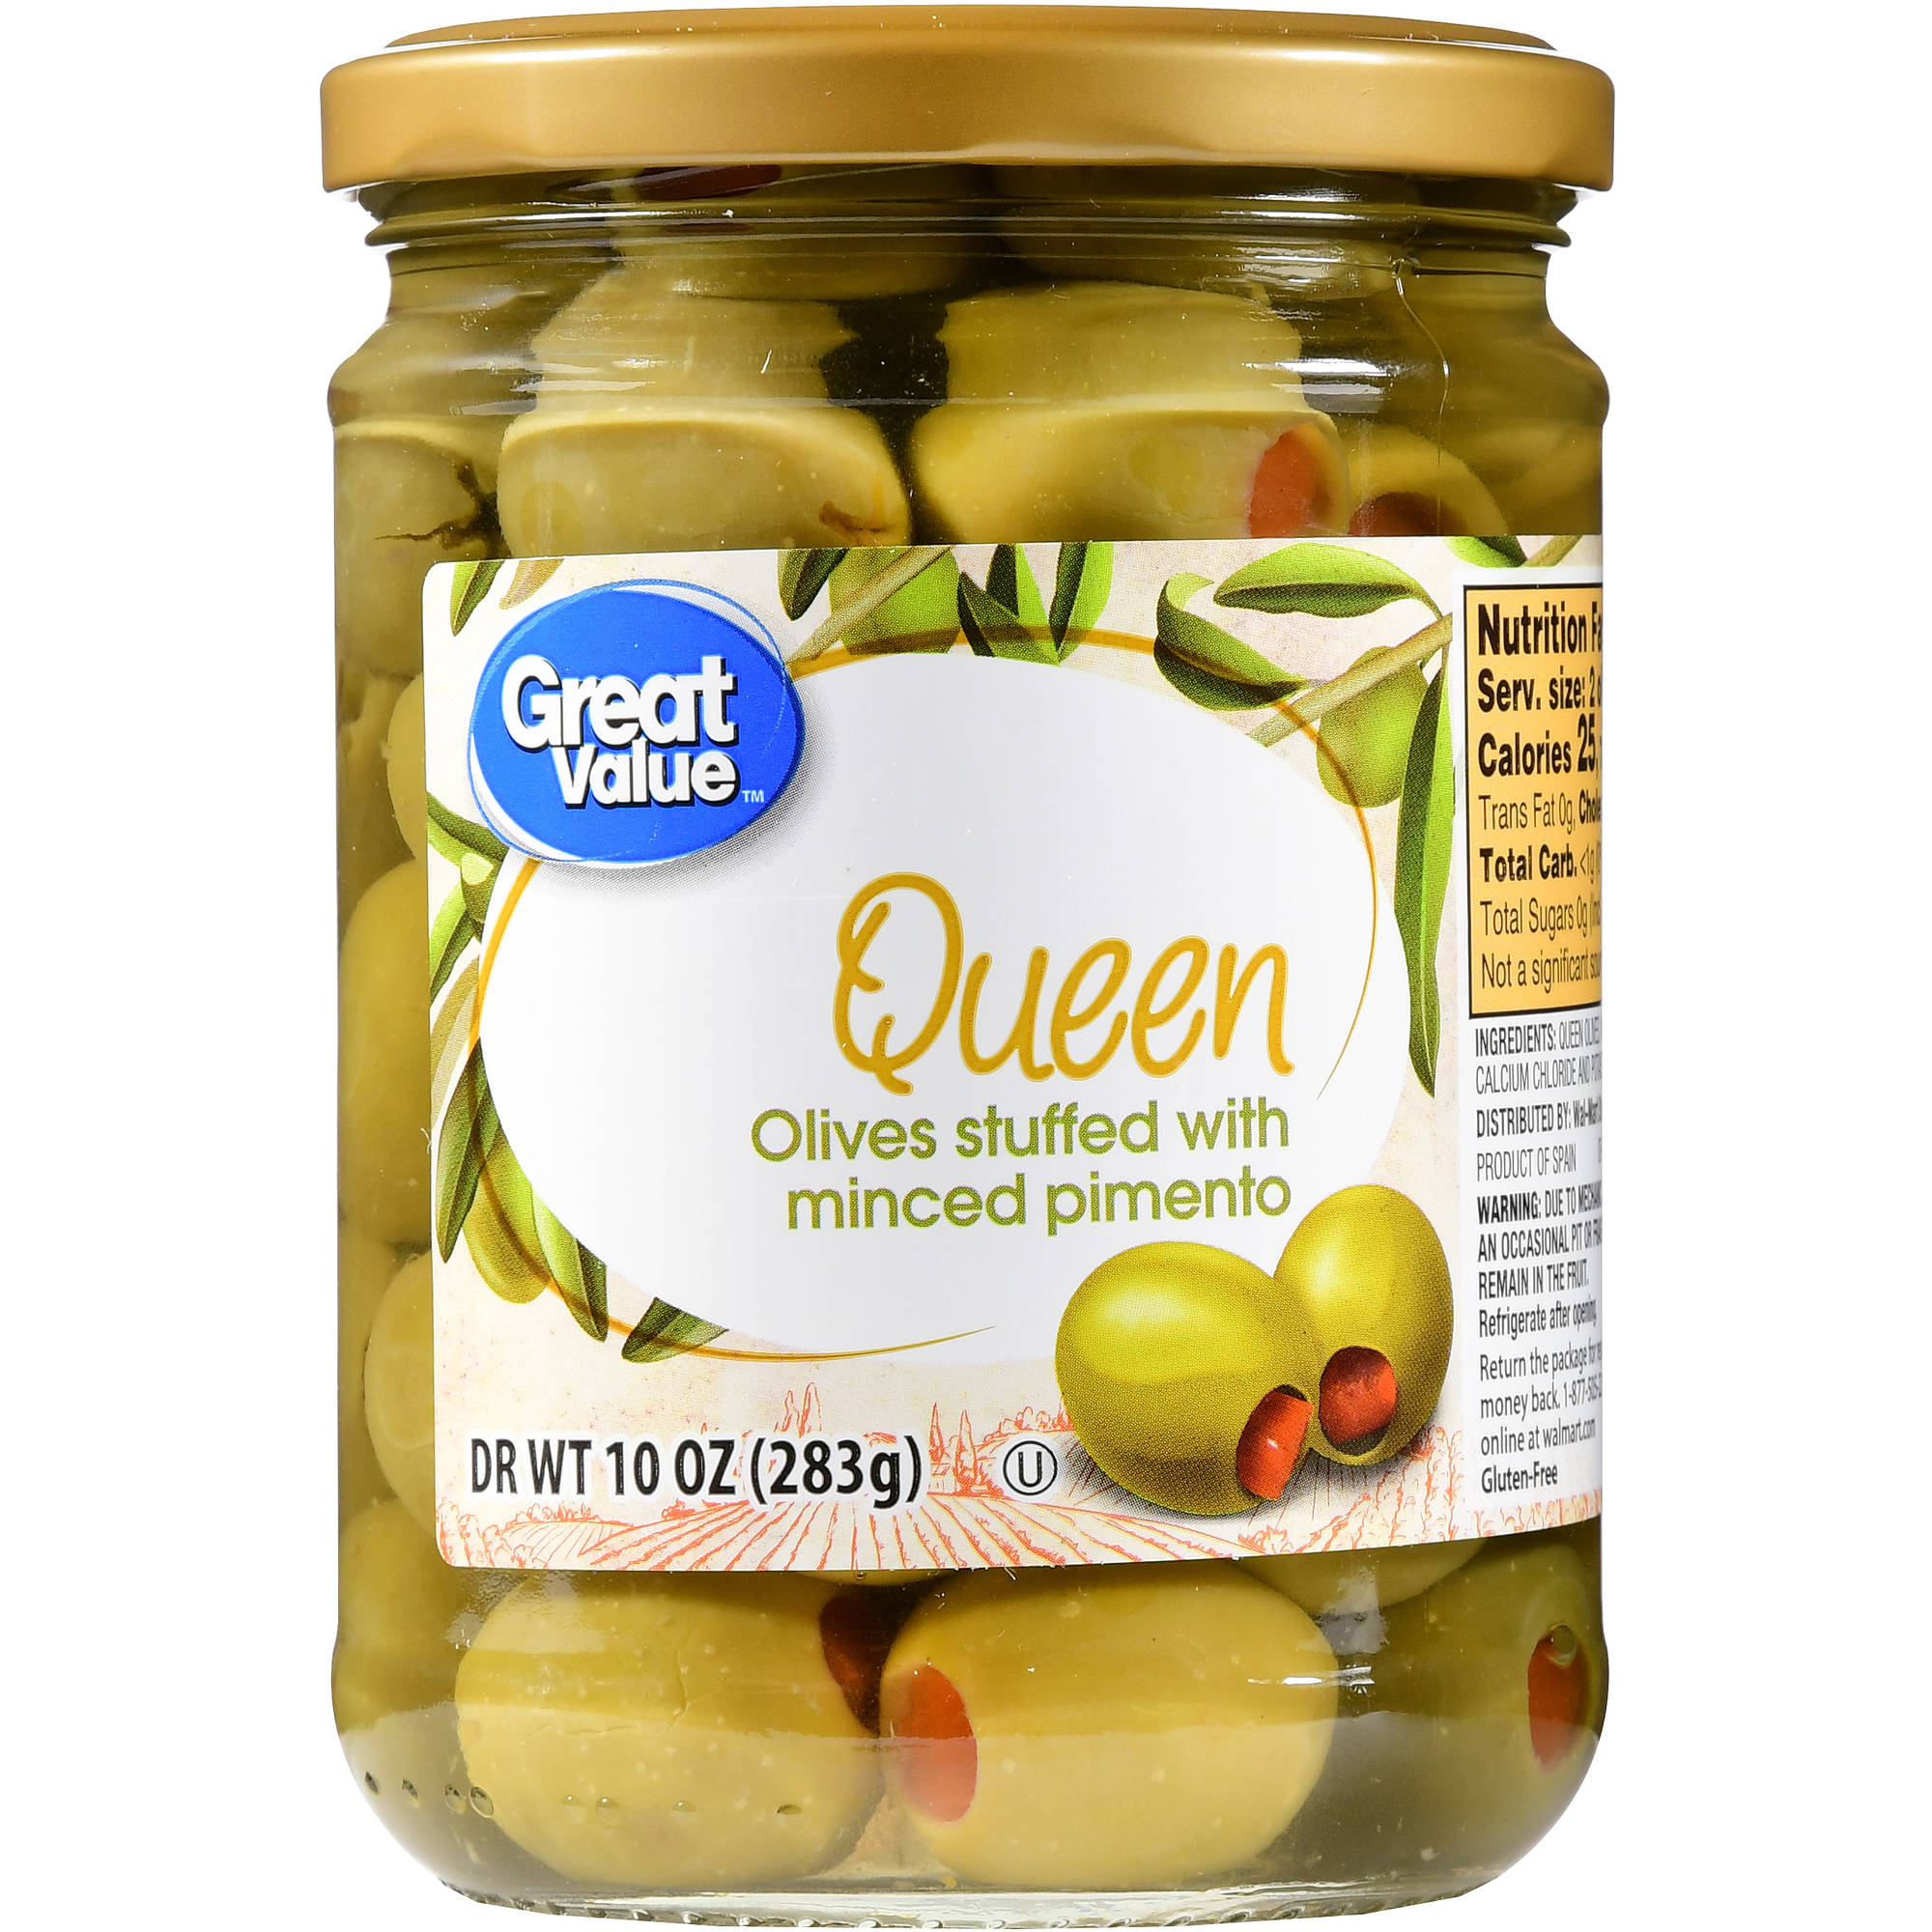 Great Value Minced Pimento Stuffed Queen Olives, 10 oz